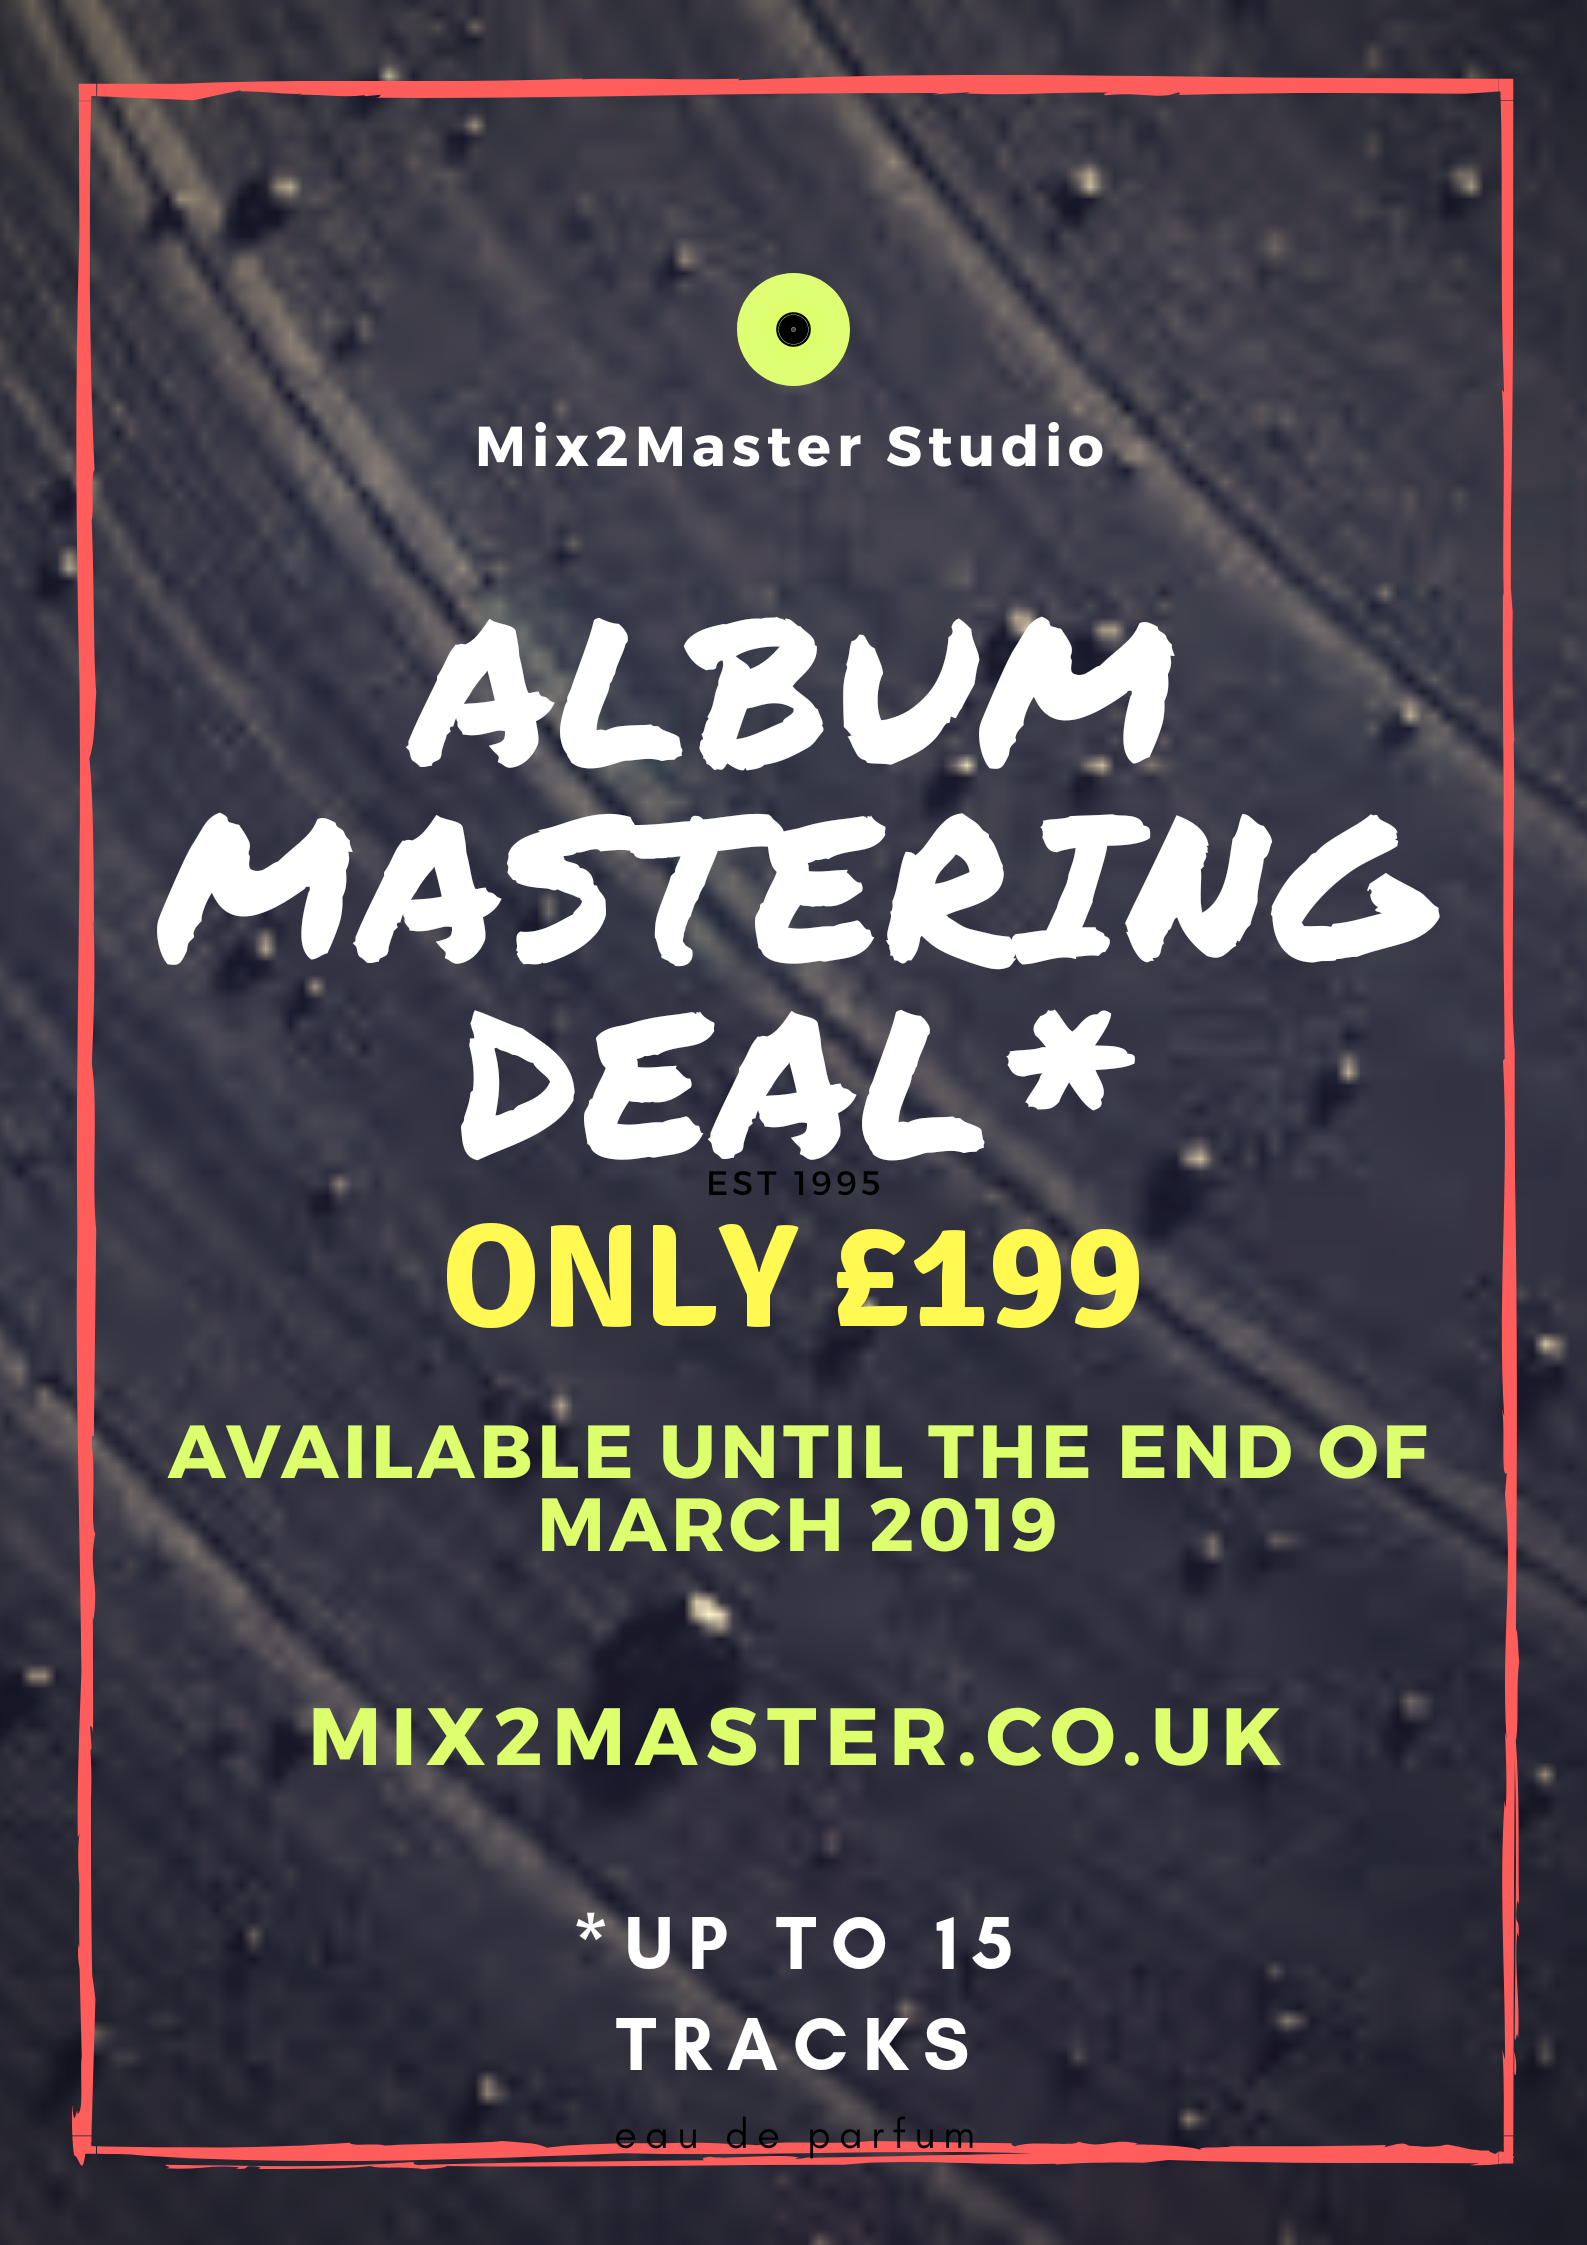 Affordable song mastering.